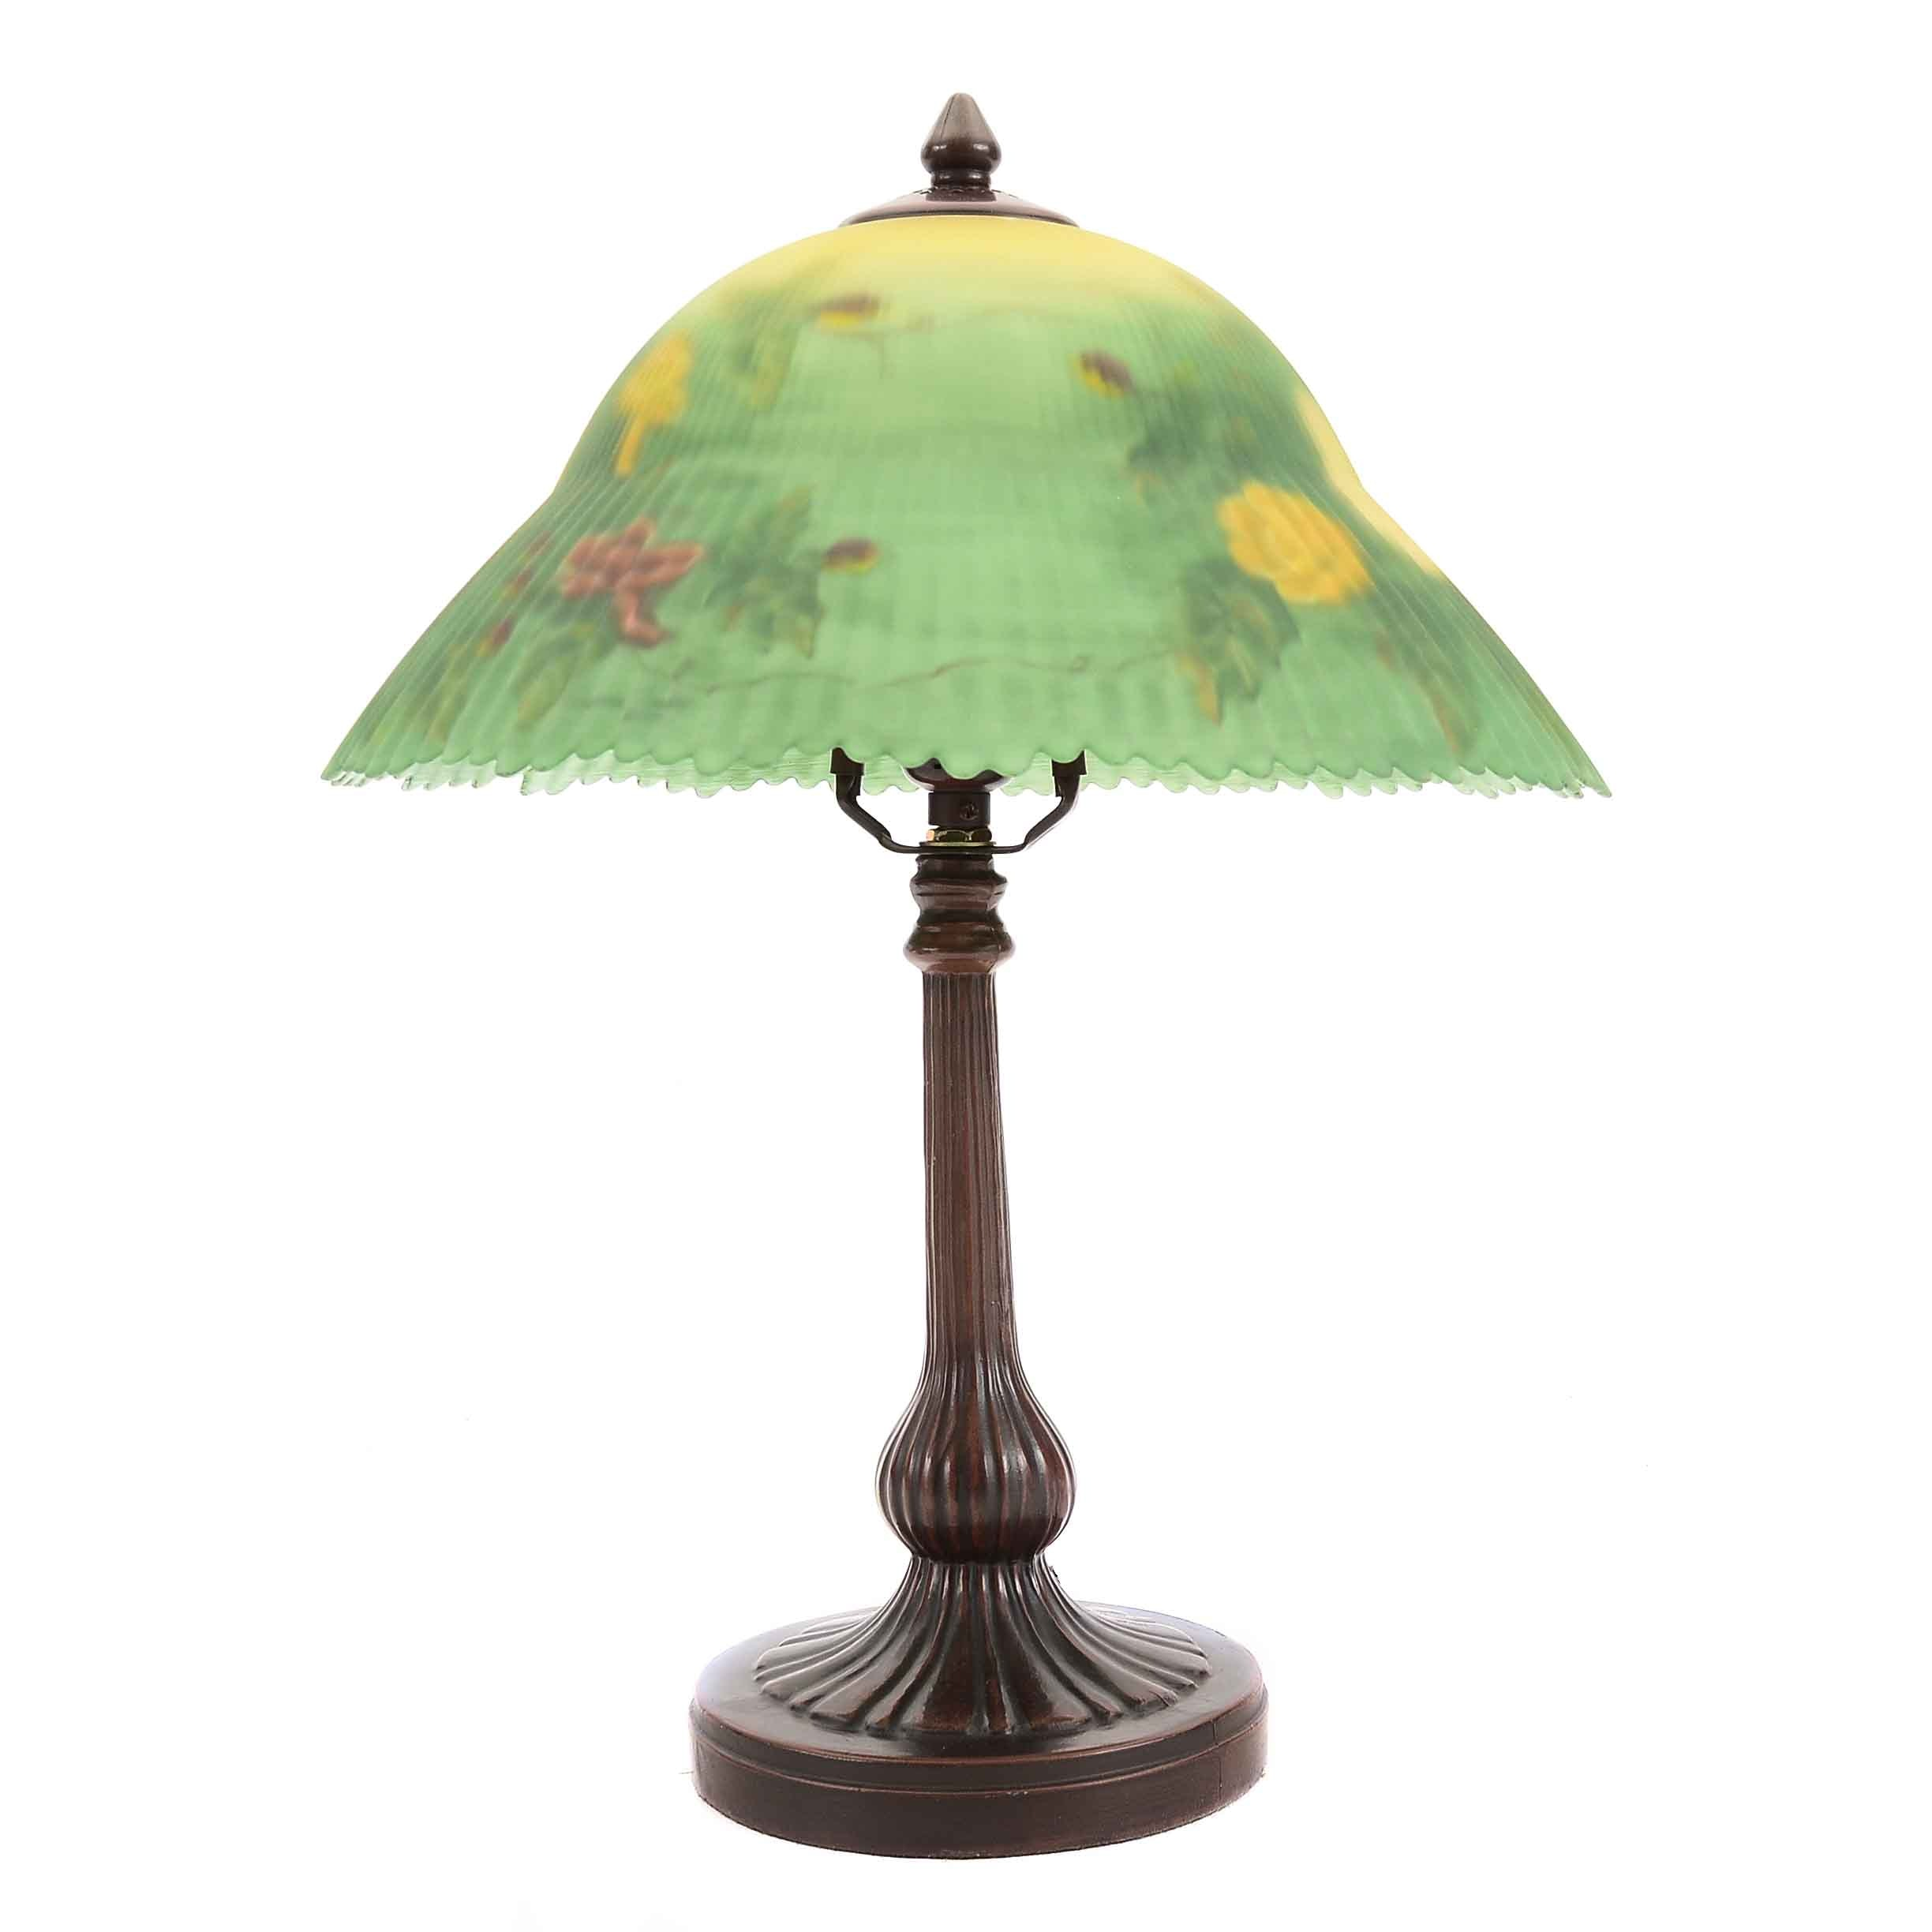 Dale Tiffany Lamp With Reverse Painted Shade ...